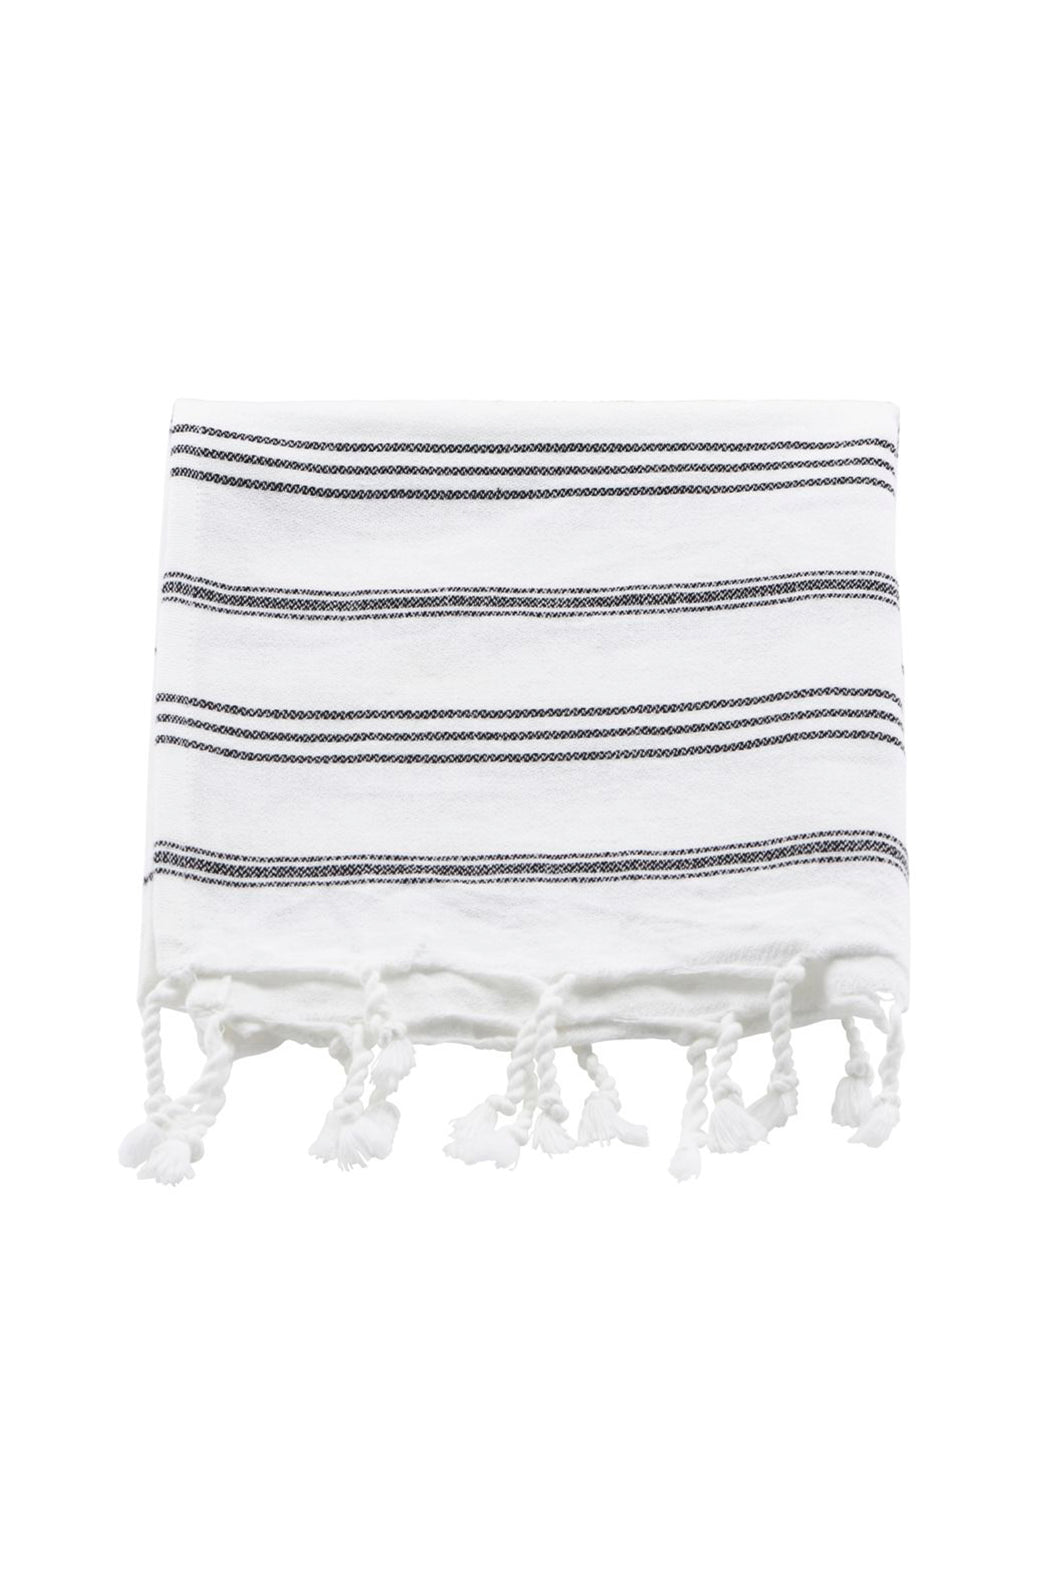 Hammam Towel, Lifestyle, Meraki - 3LittlePicks